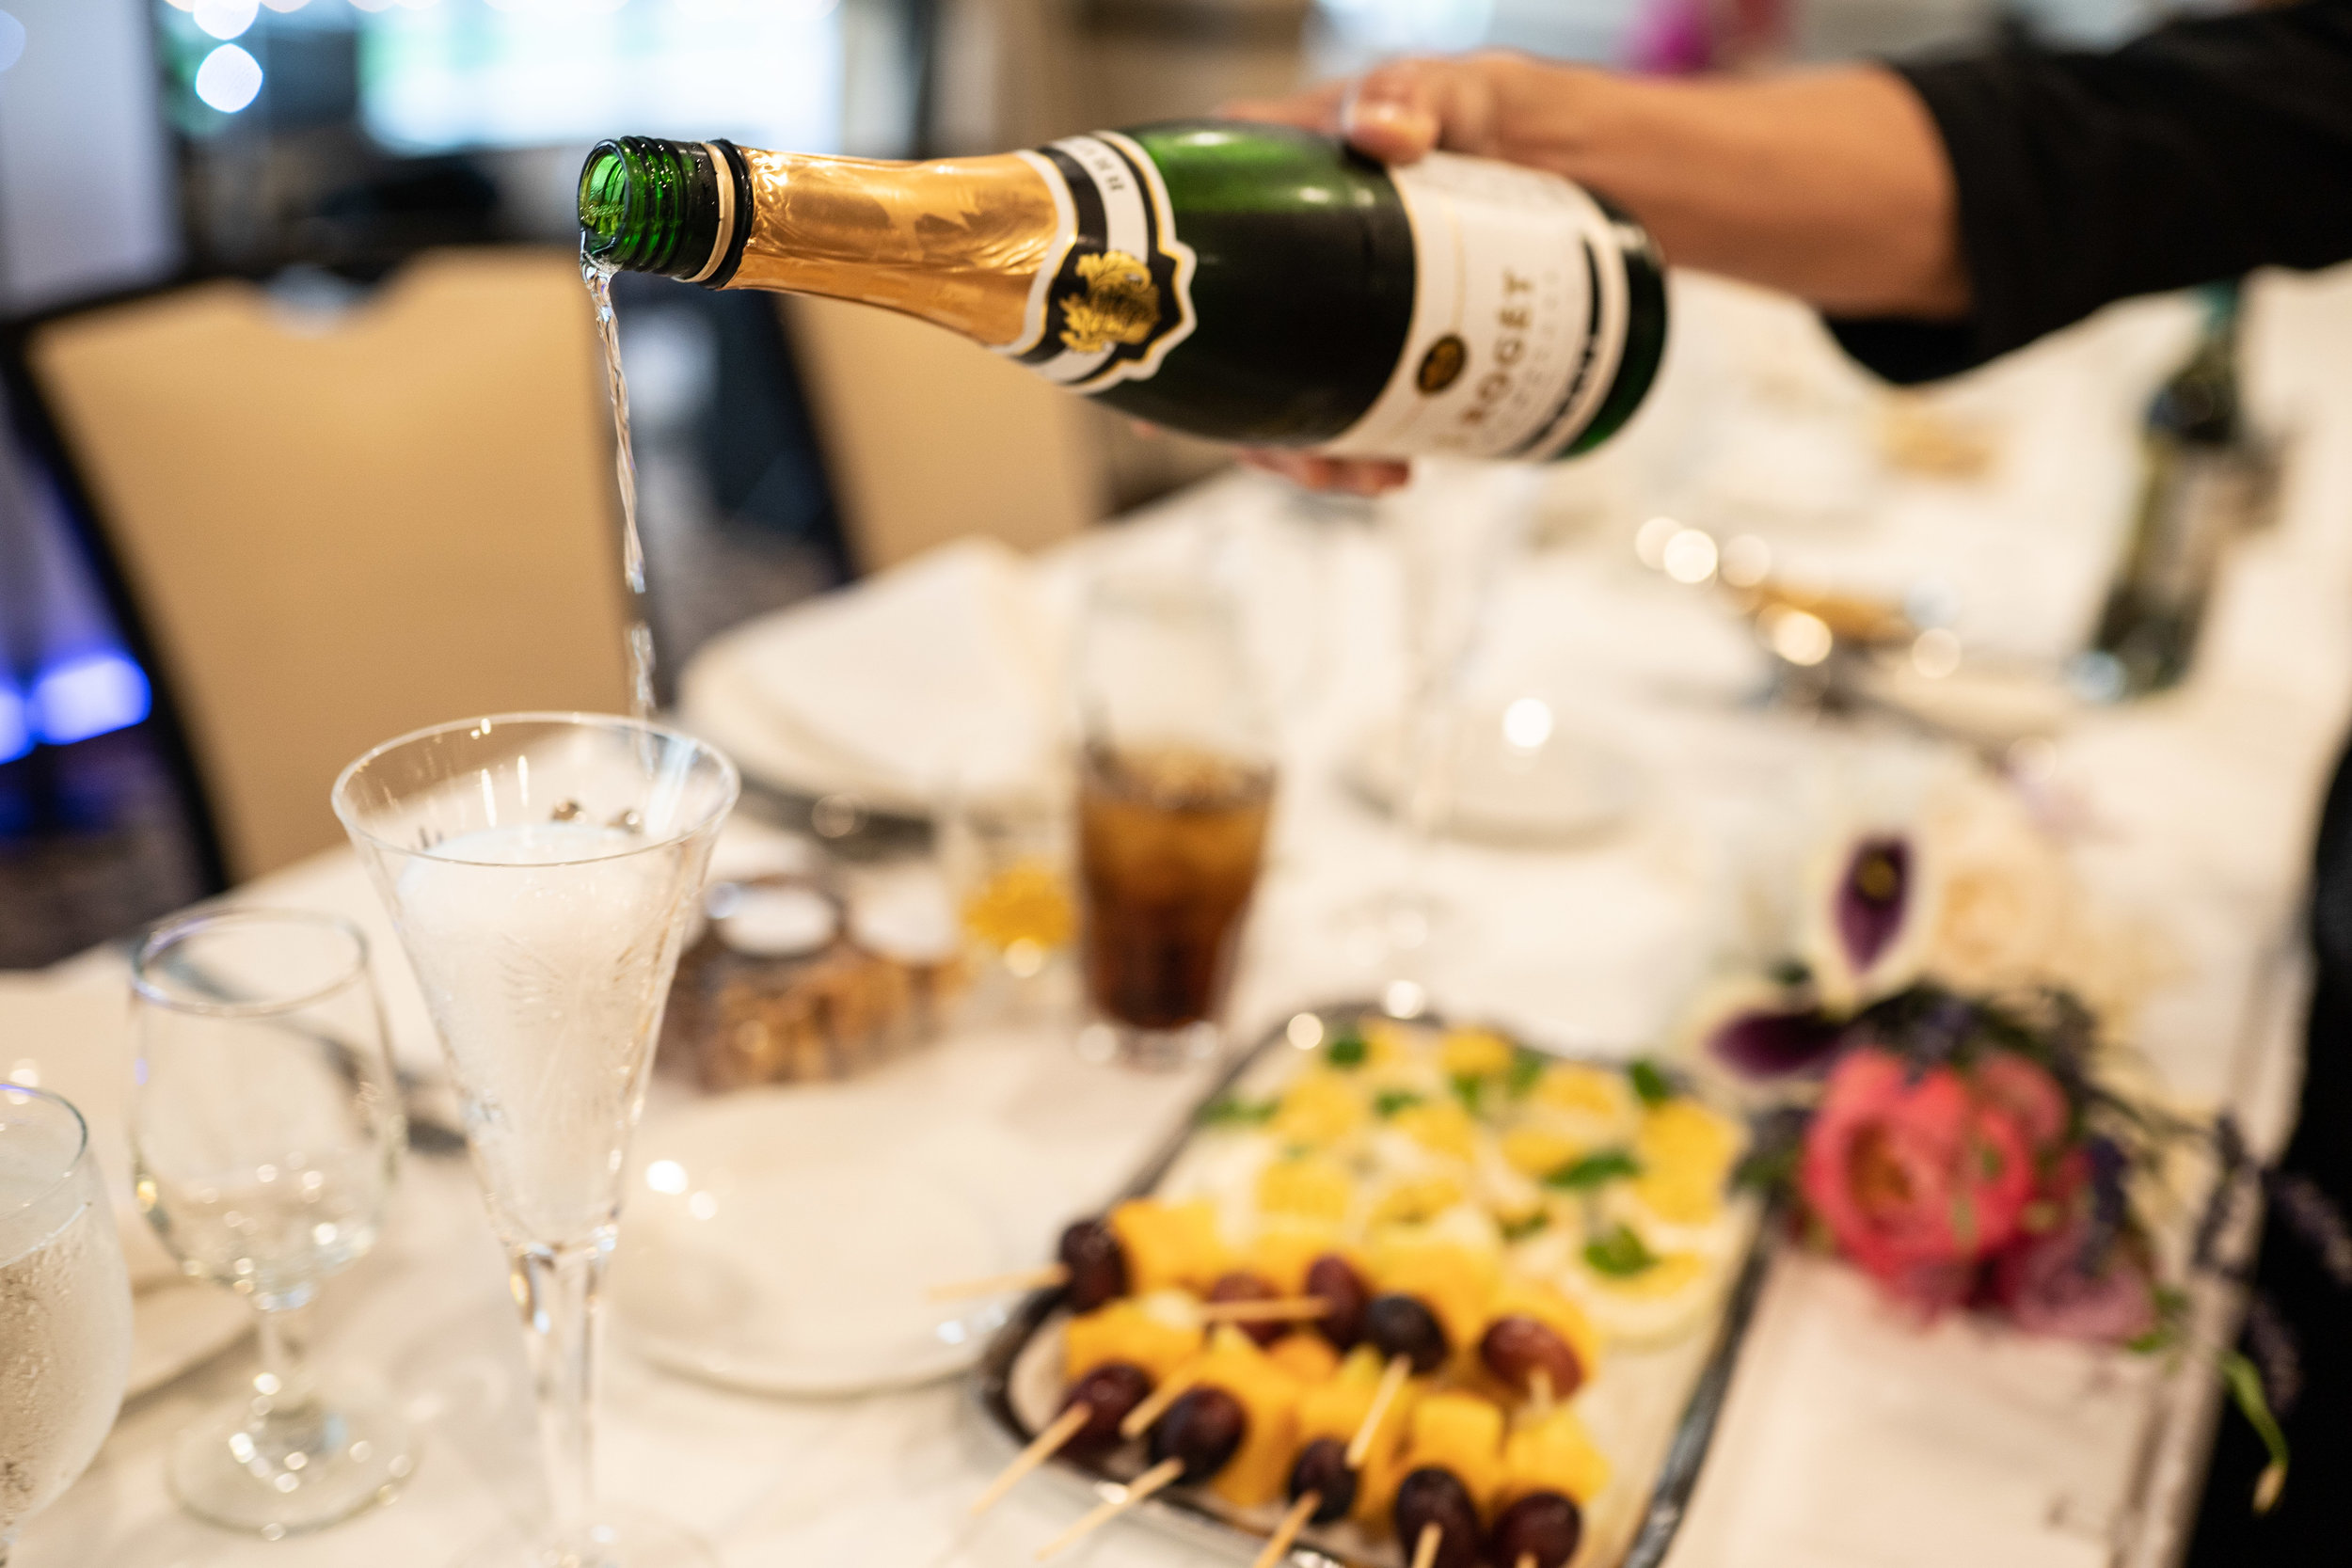 wedding-detail-hors-d'oeuvres-champagne-pour-at-head-table-for-bride-and-groom.jpg